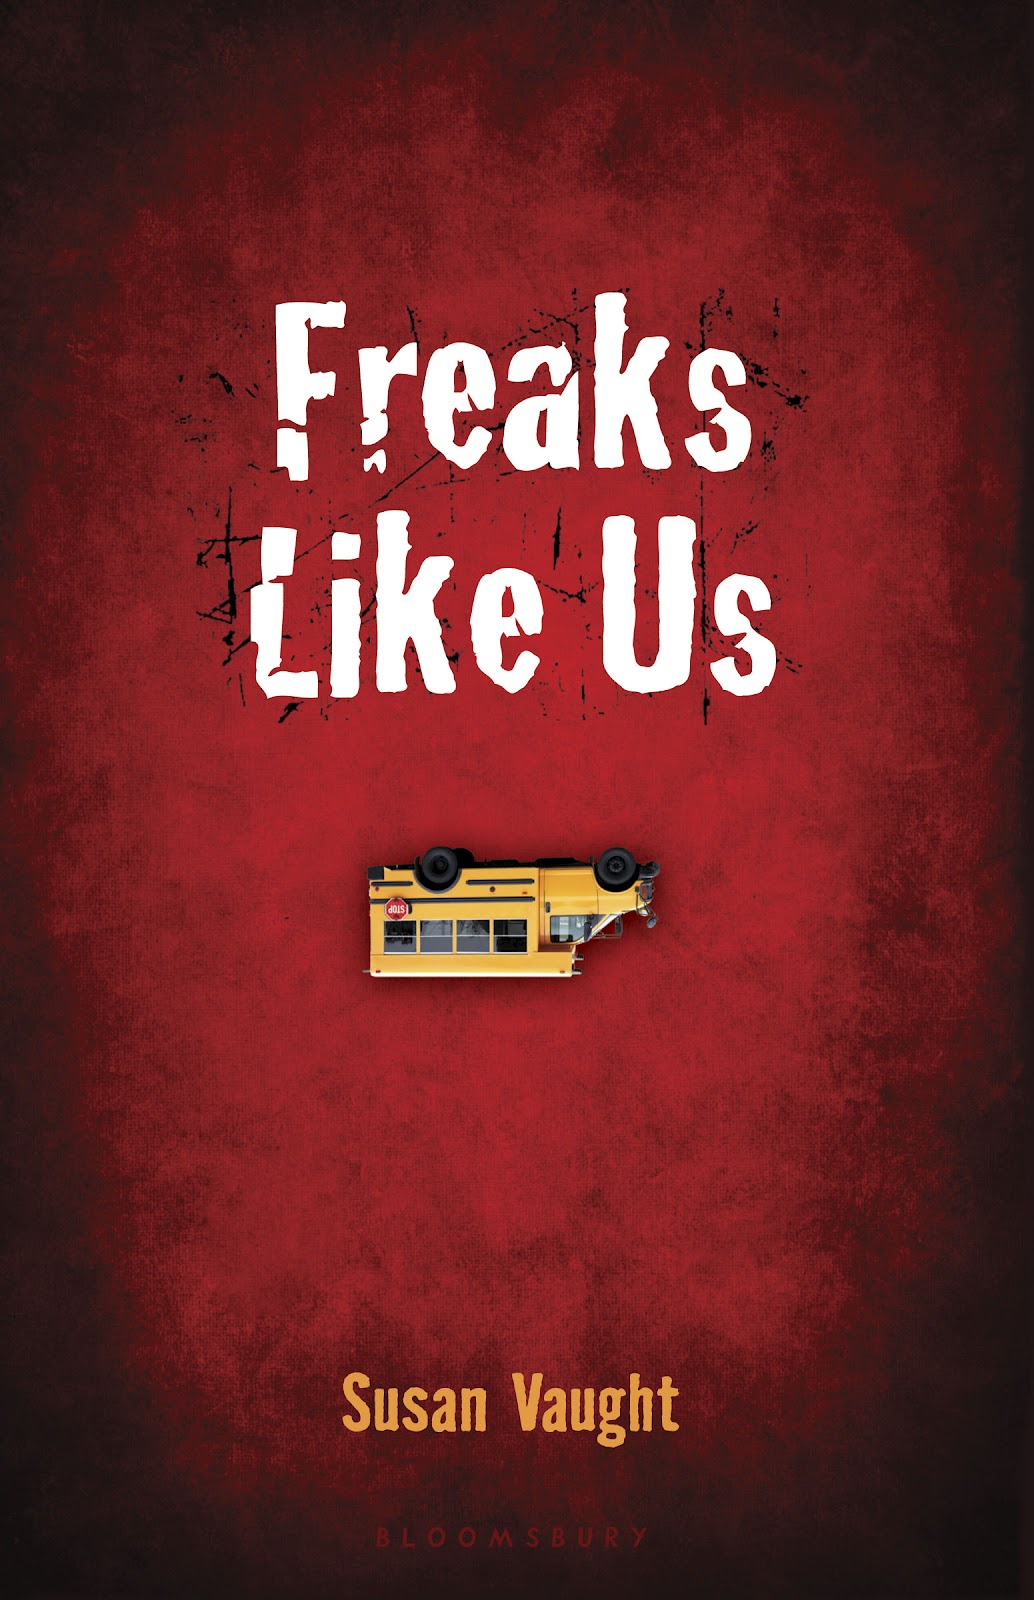 Confronting Stereotypes of Teens with Schizophrenia: A Review of Freaks Like Us